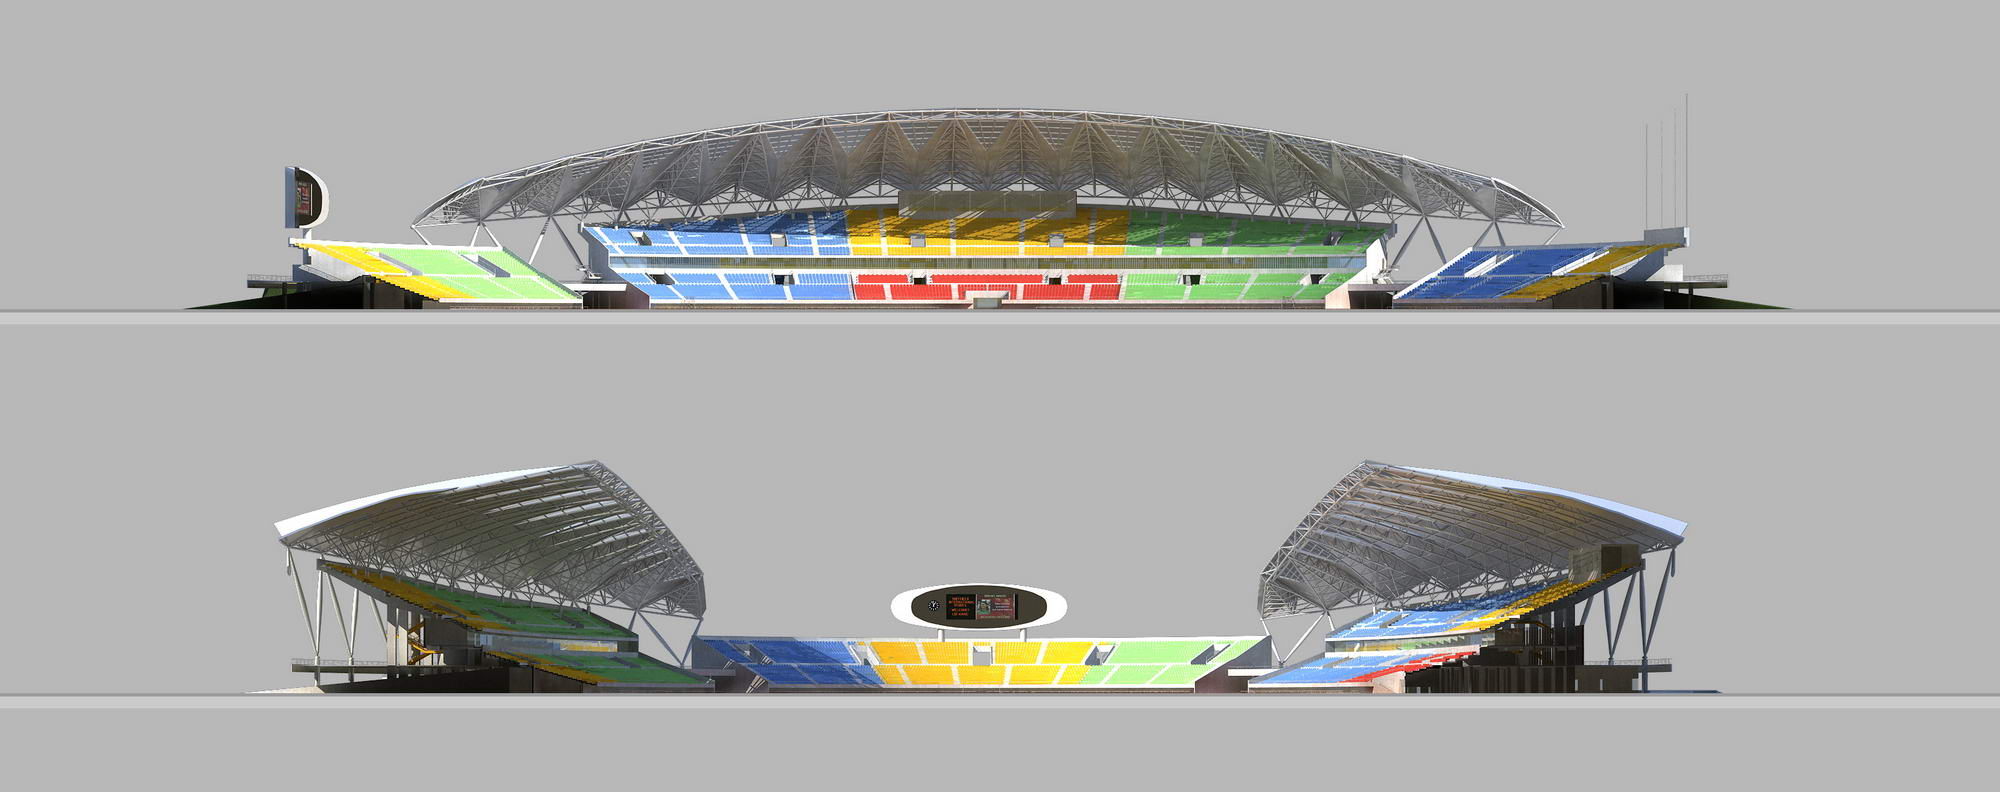 grand stadium 001 3d model 3ds max psd obj 98292